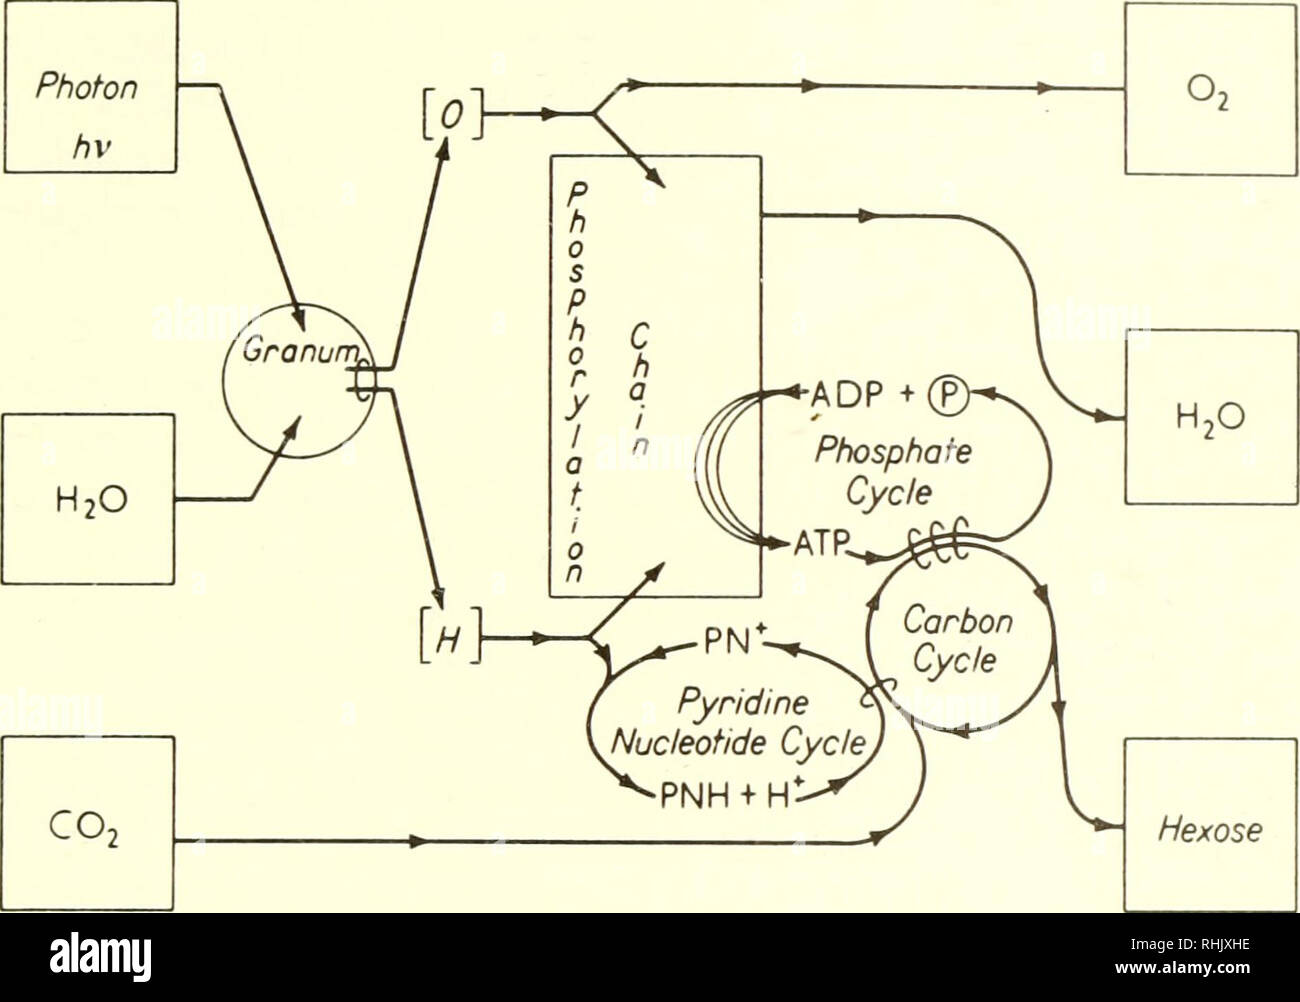 diagram with inputs and outputs of photosynthesis process what is the use er stock photos 20 3 367 then adp available